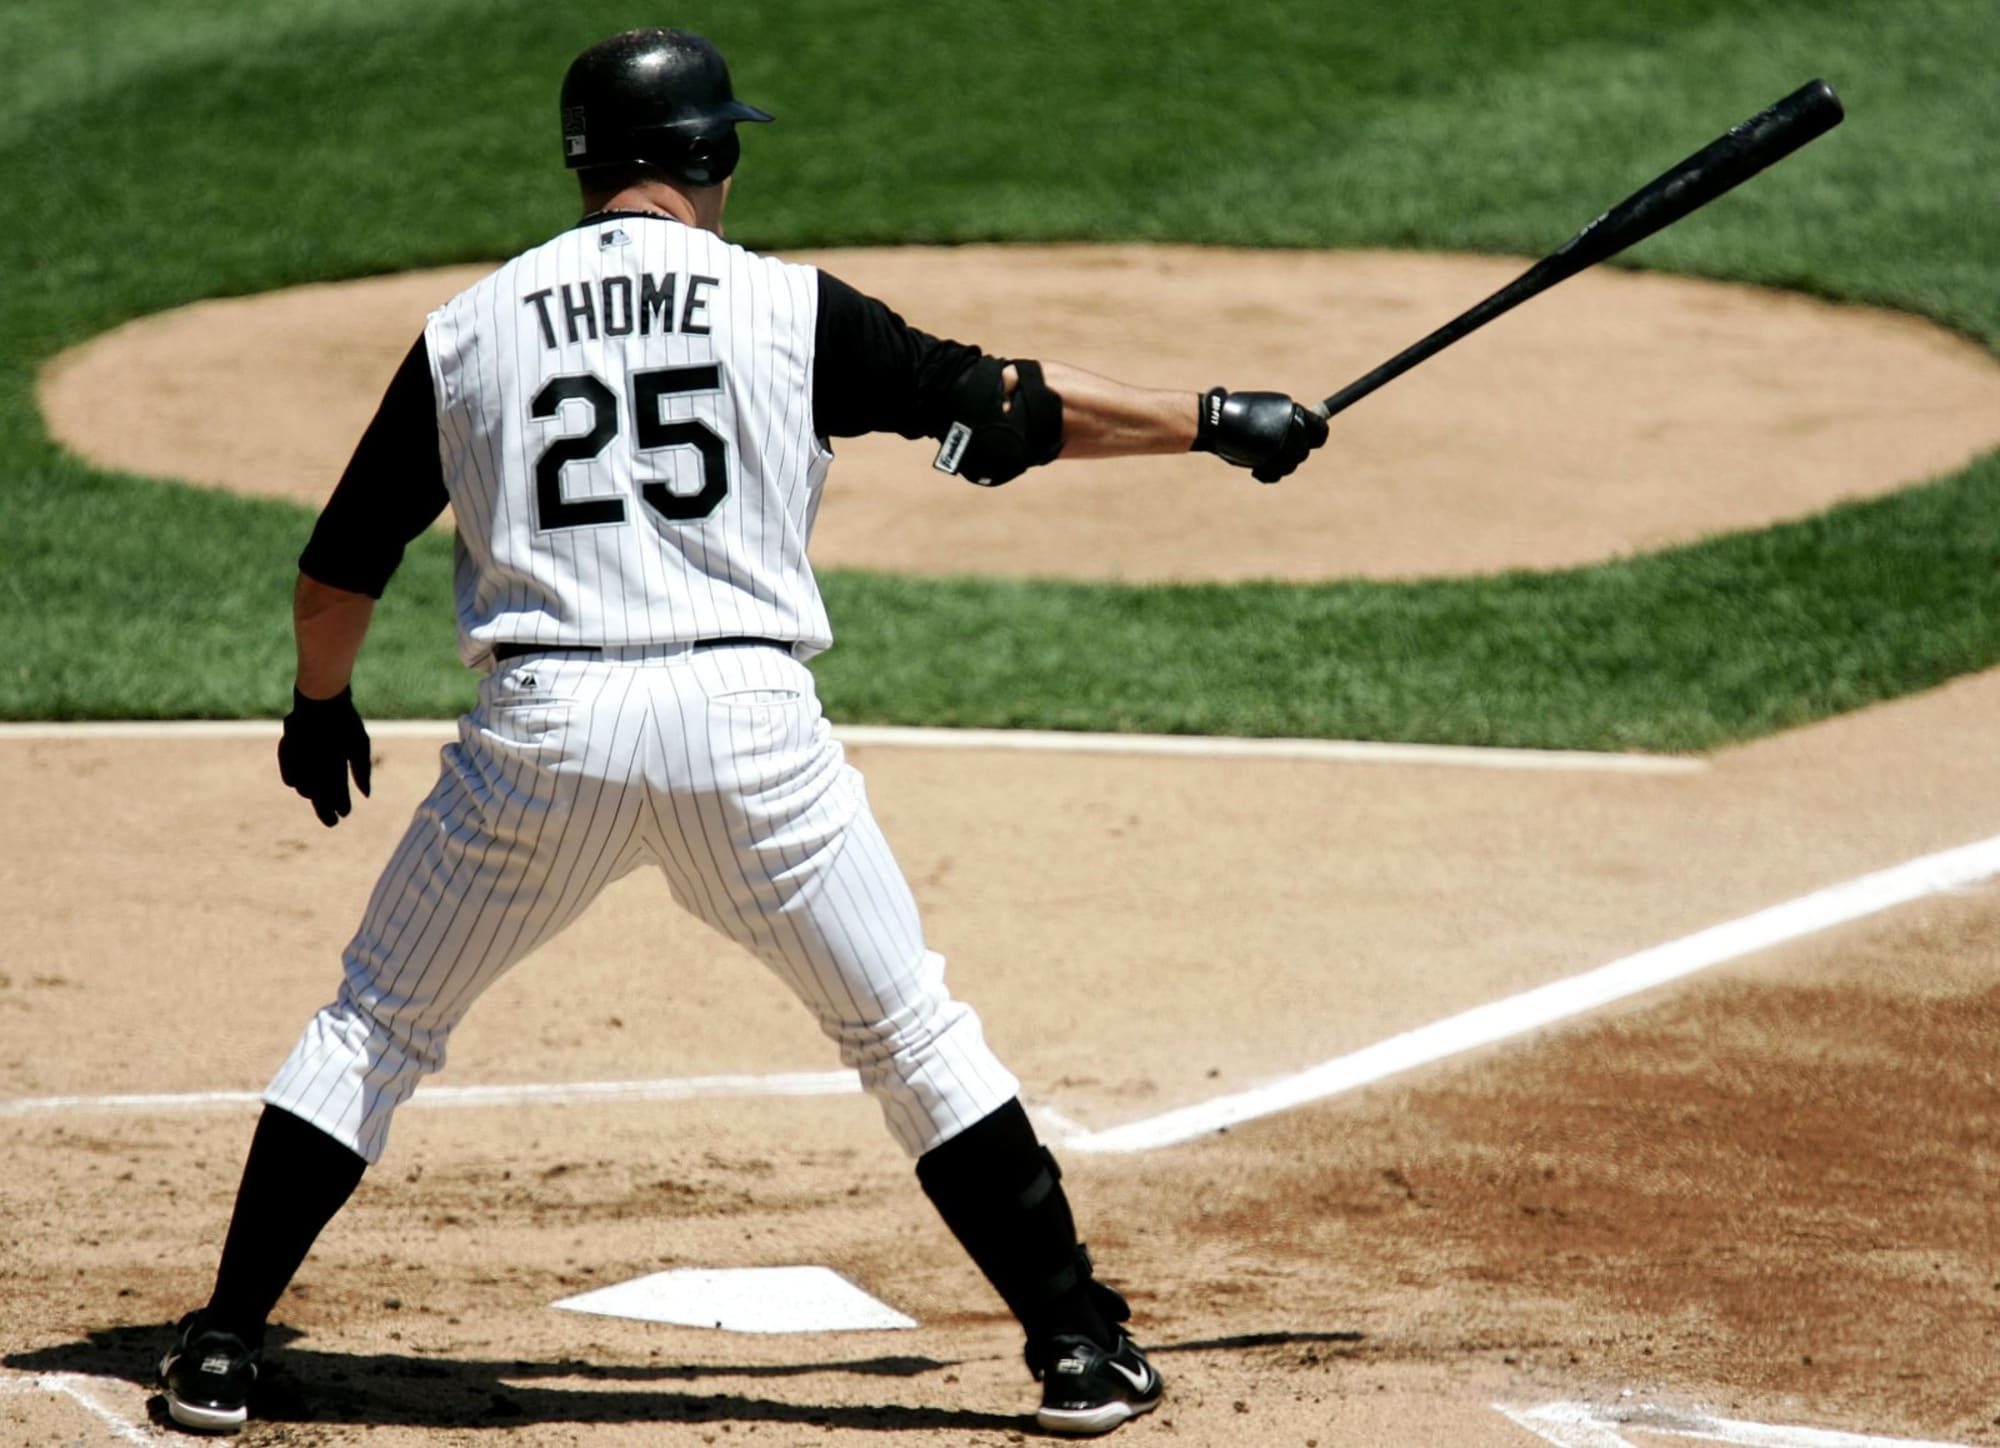 Chicago White Sox: Illinois baseball is on the map in a big way